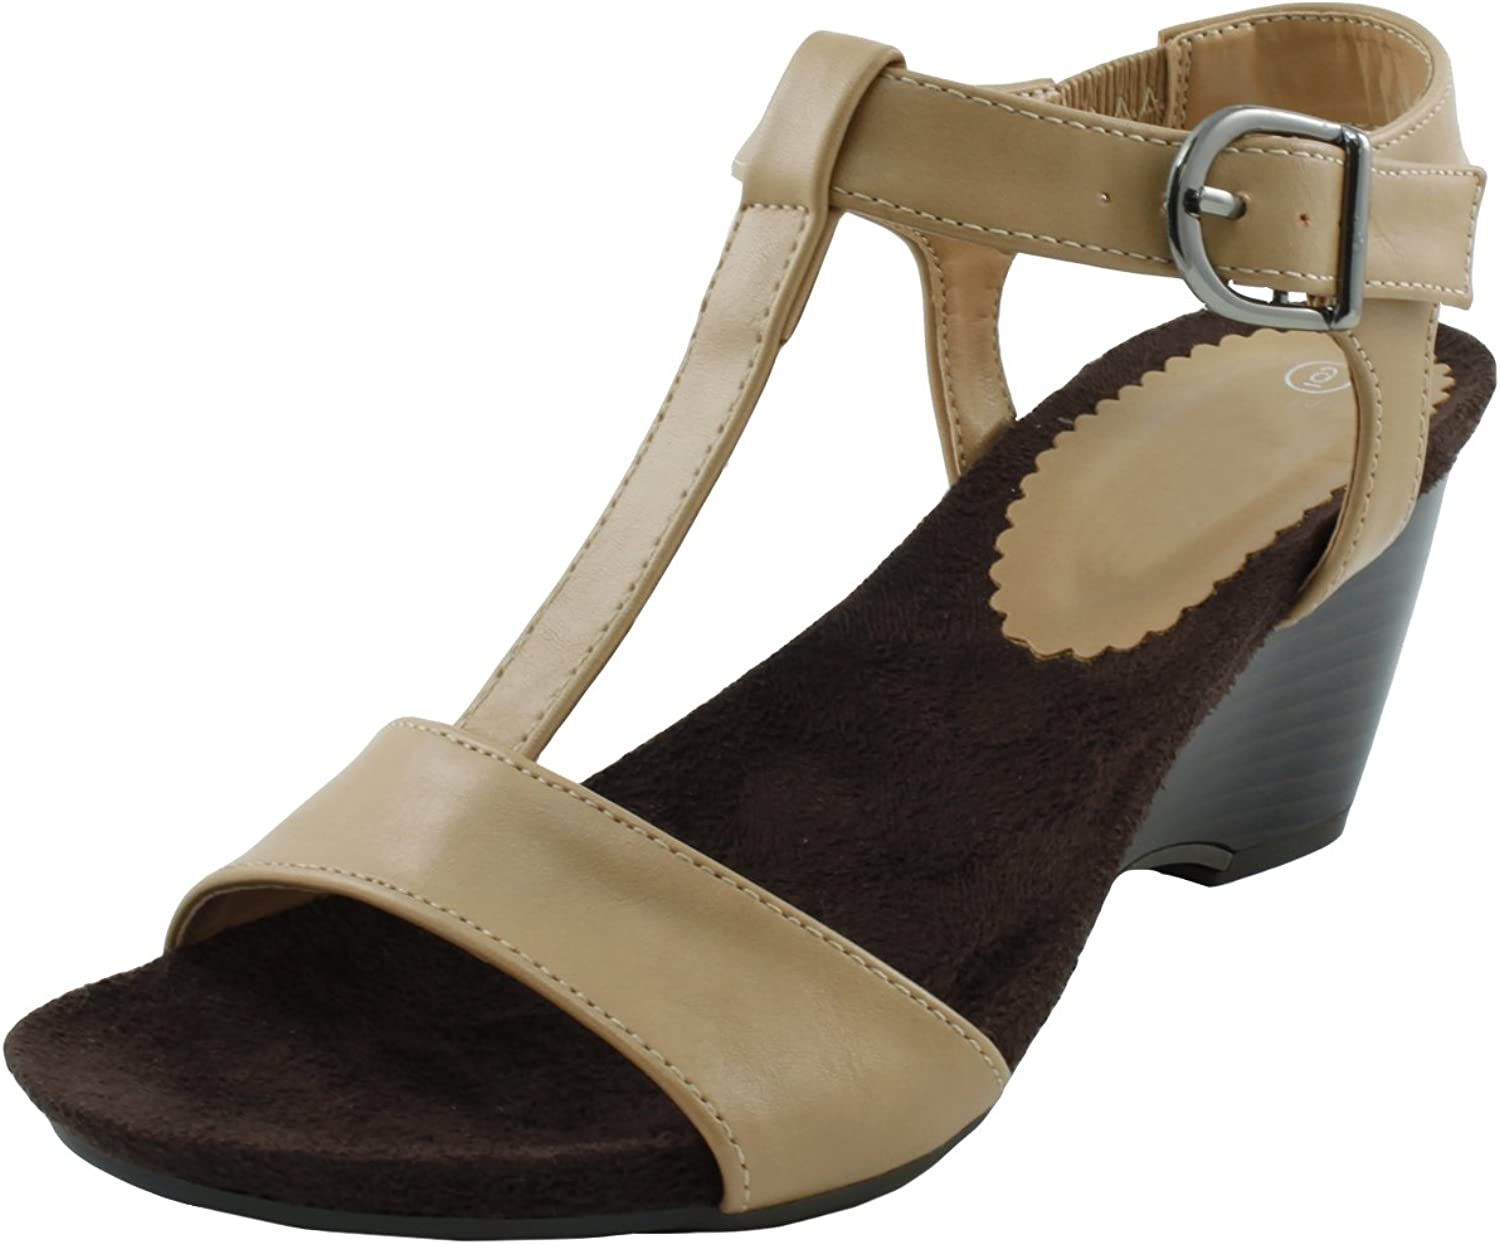 Cambridge Select Women's T-Strap Buckle Open Toe Platform Wedge Sandal,9 M US,Beige